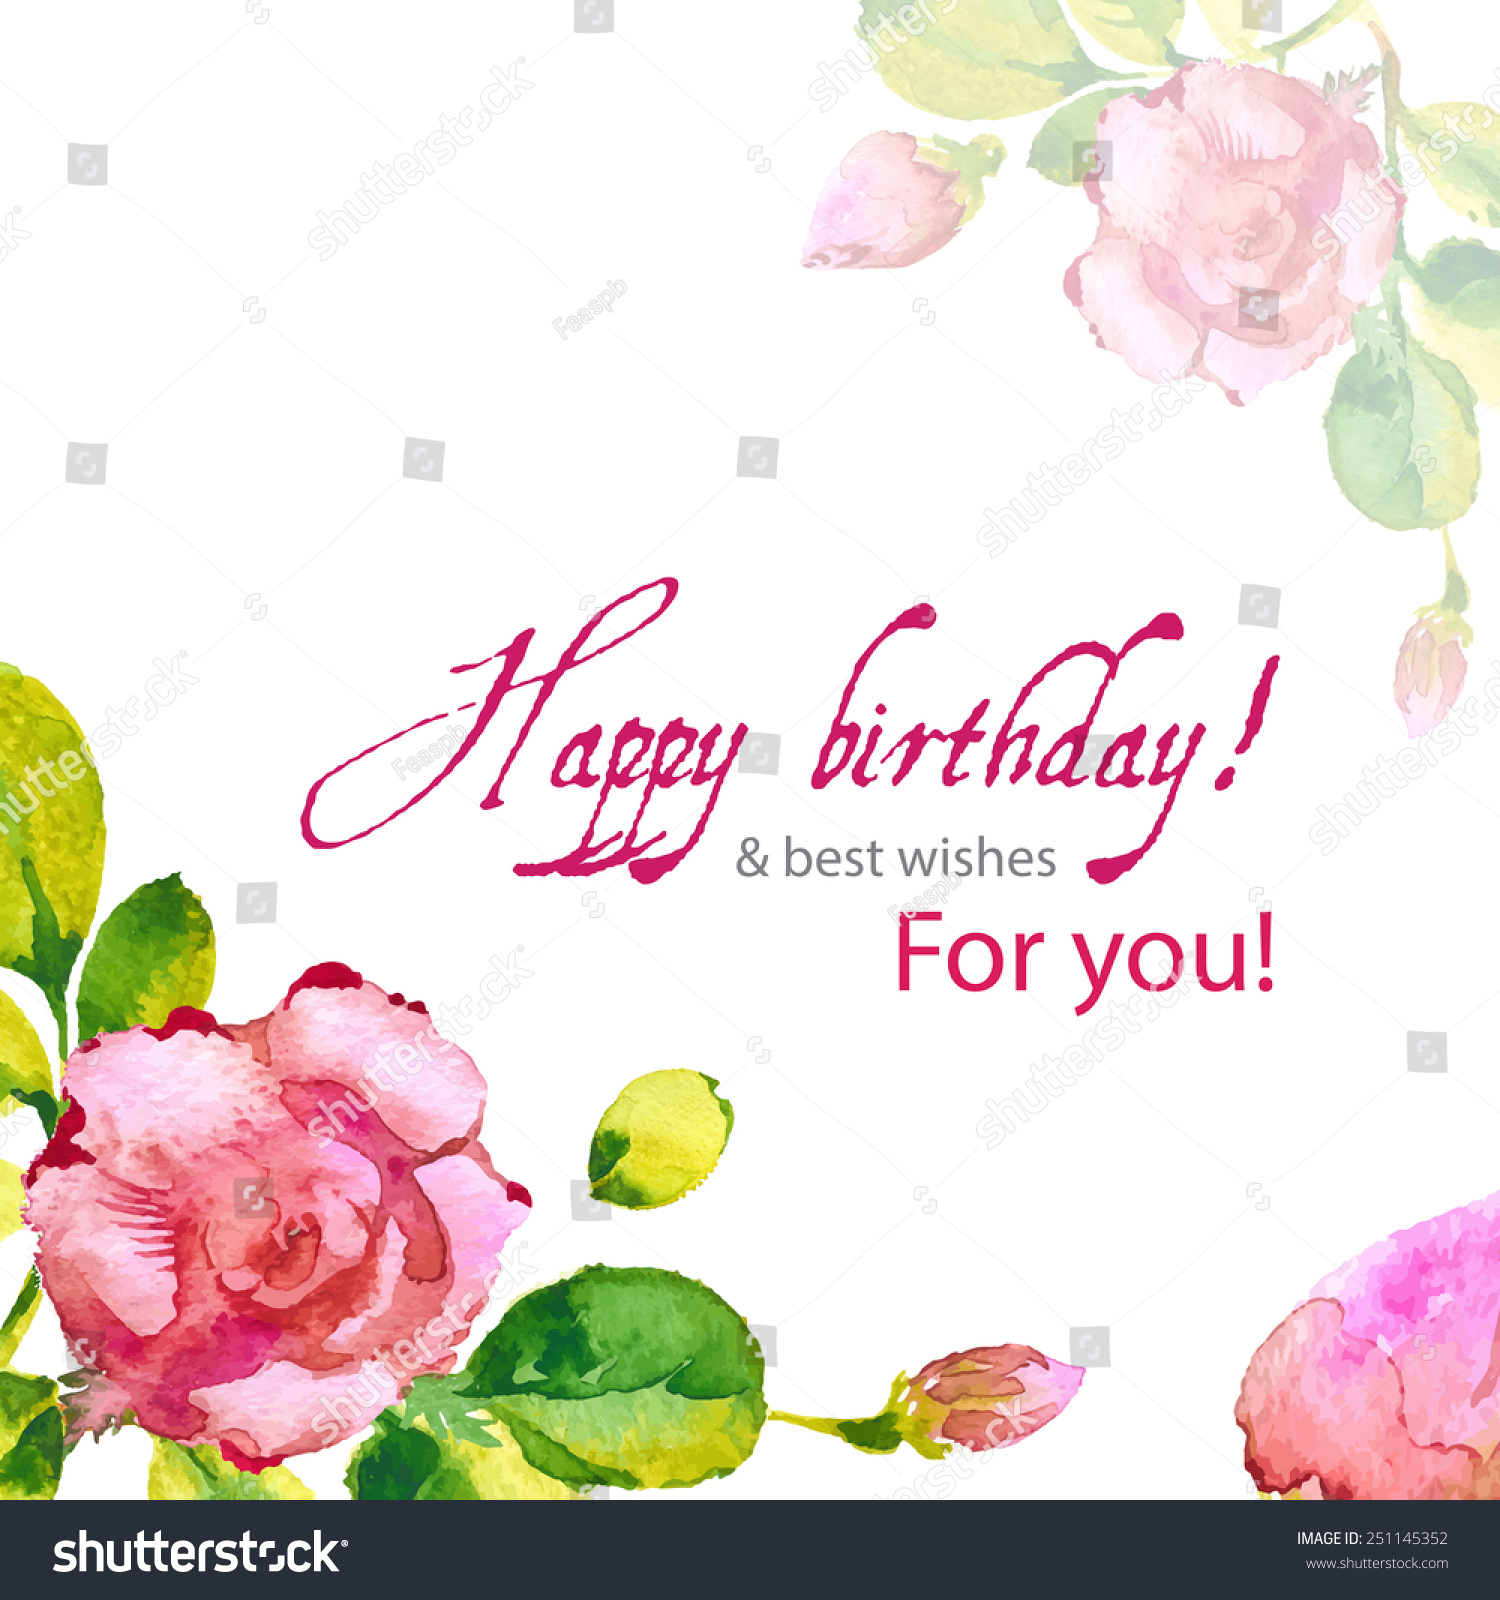 Birthday flower card image collections flower wallpaper hd birthday flower card images flower wallpaper hd happy birthday vintage flower card vector stock vector 251145352 izmirmasajfo